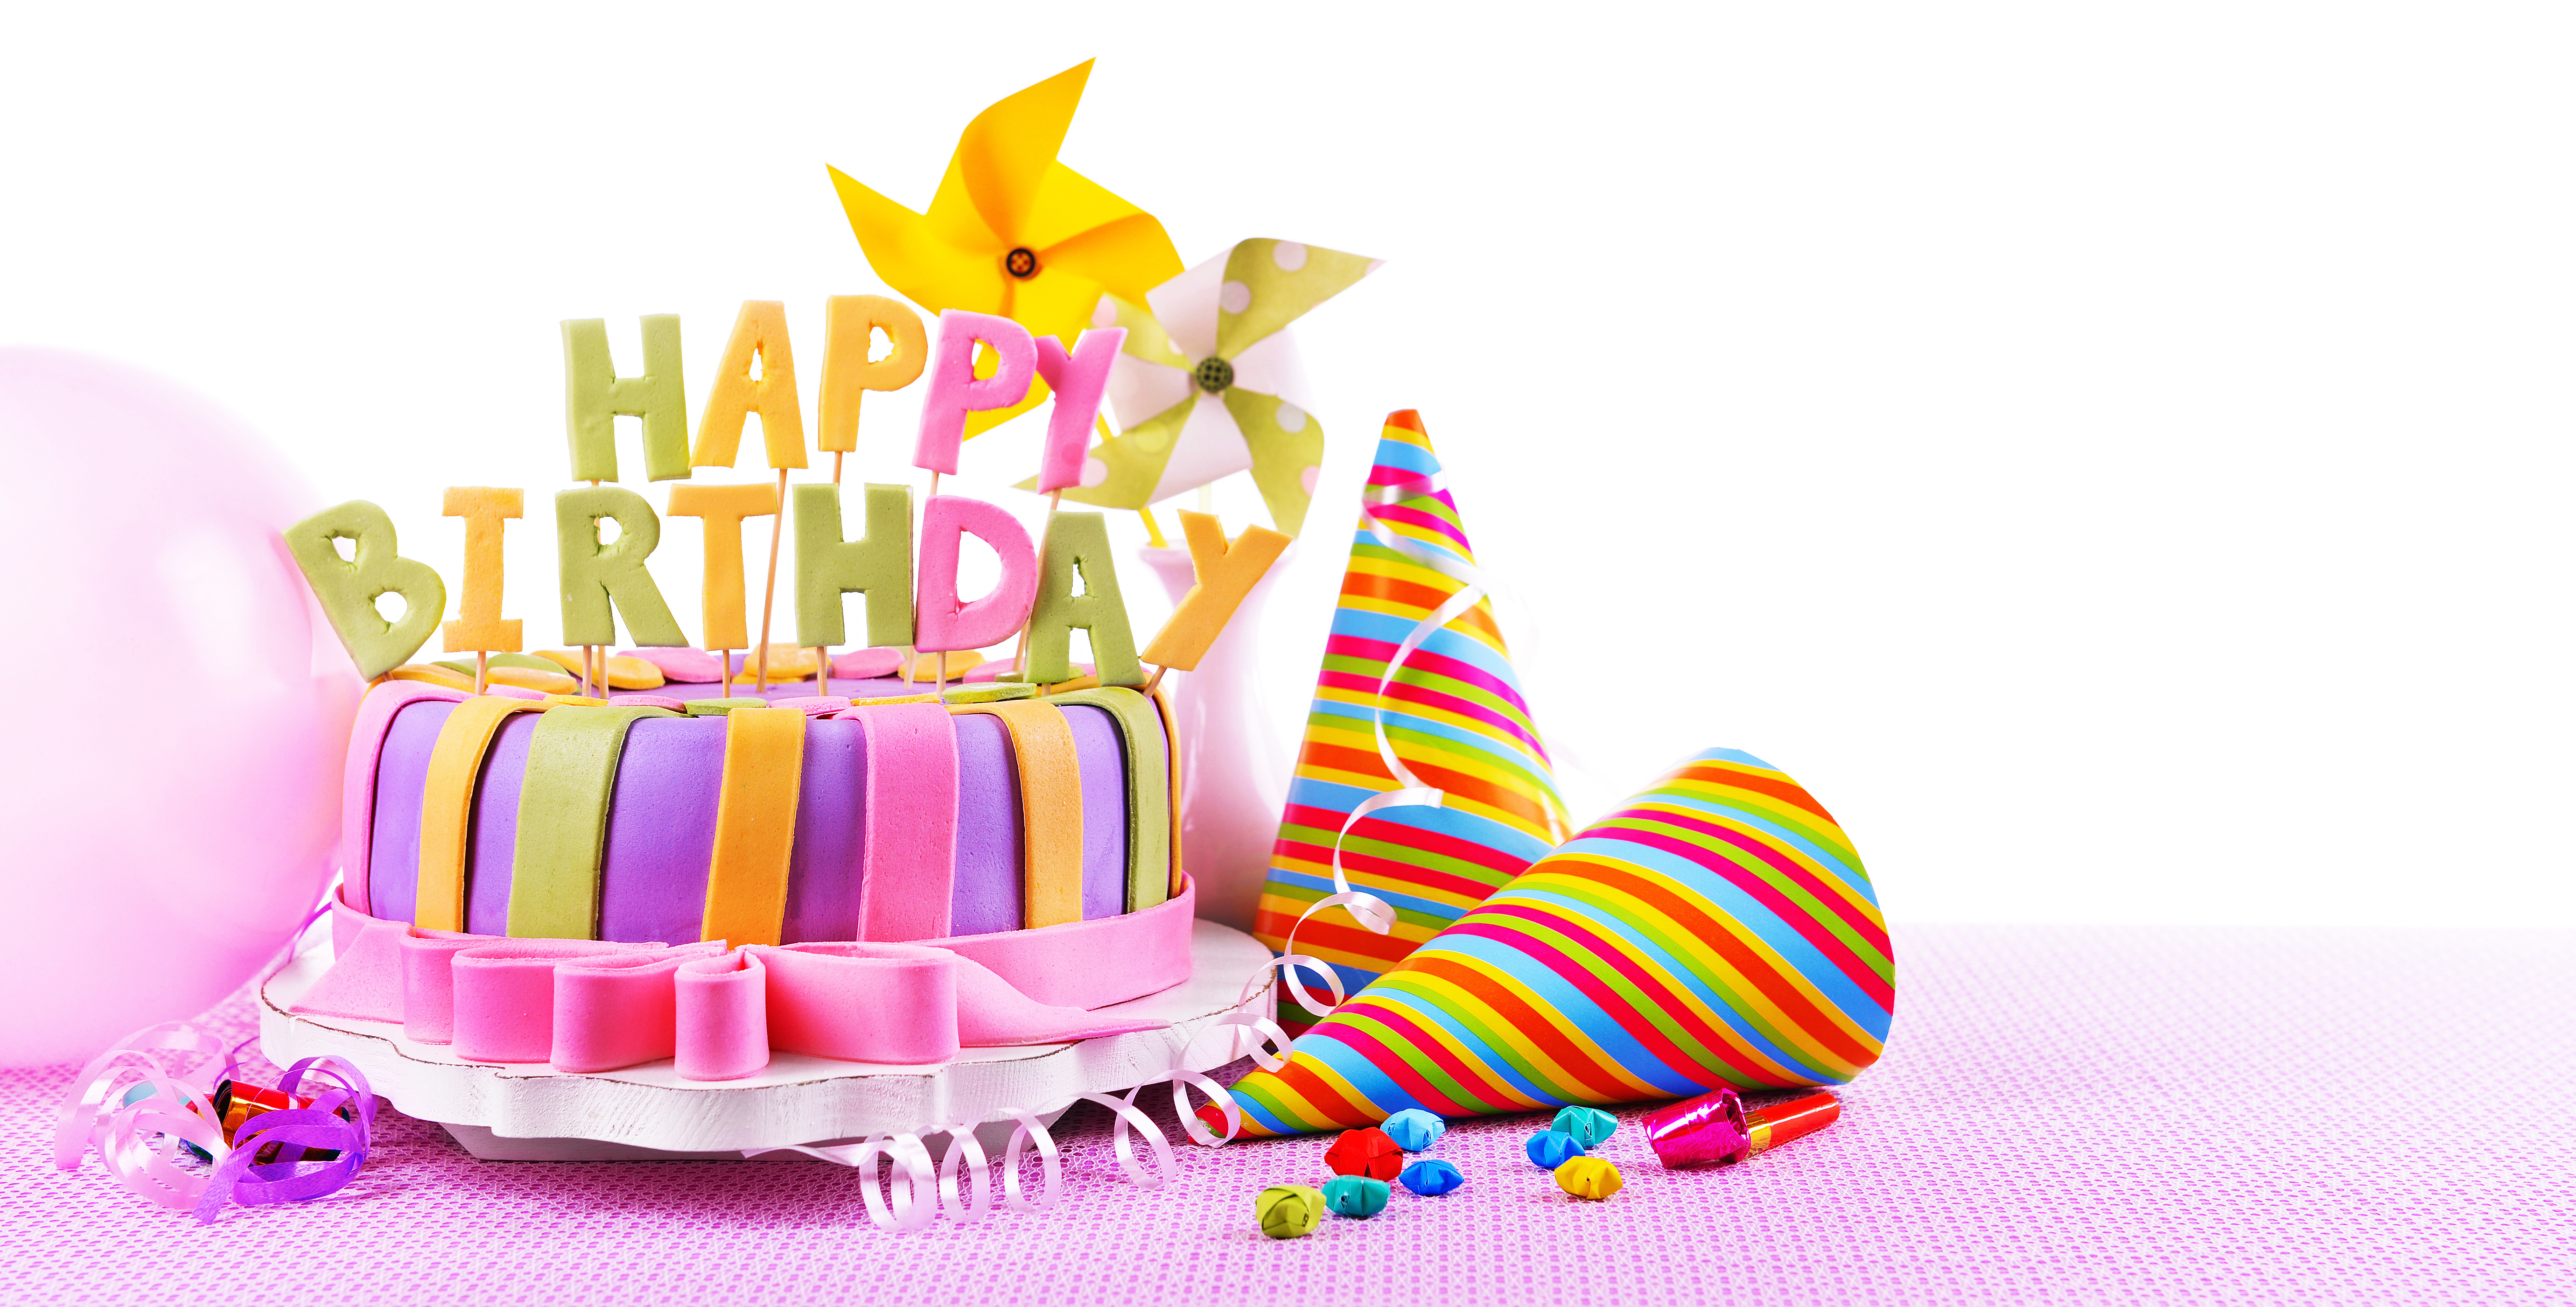 birthday cake wallpaper images ; Happy-Birthday-Cake-With-Balloons-Ultra-Hd-Pic